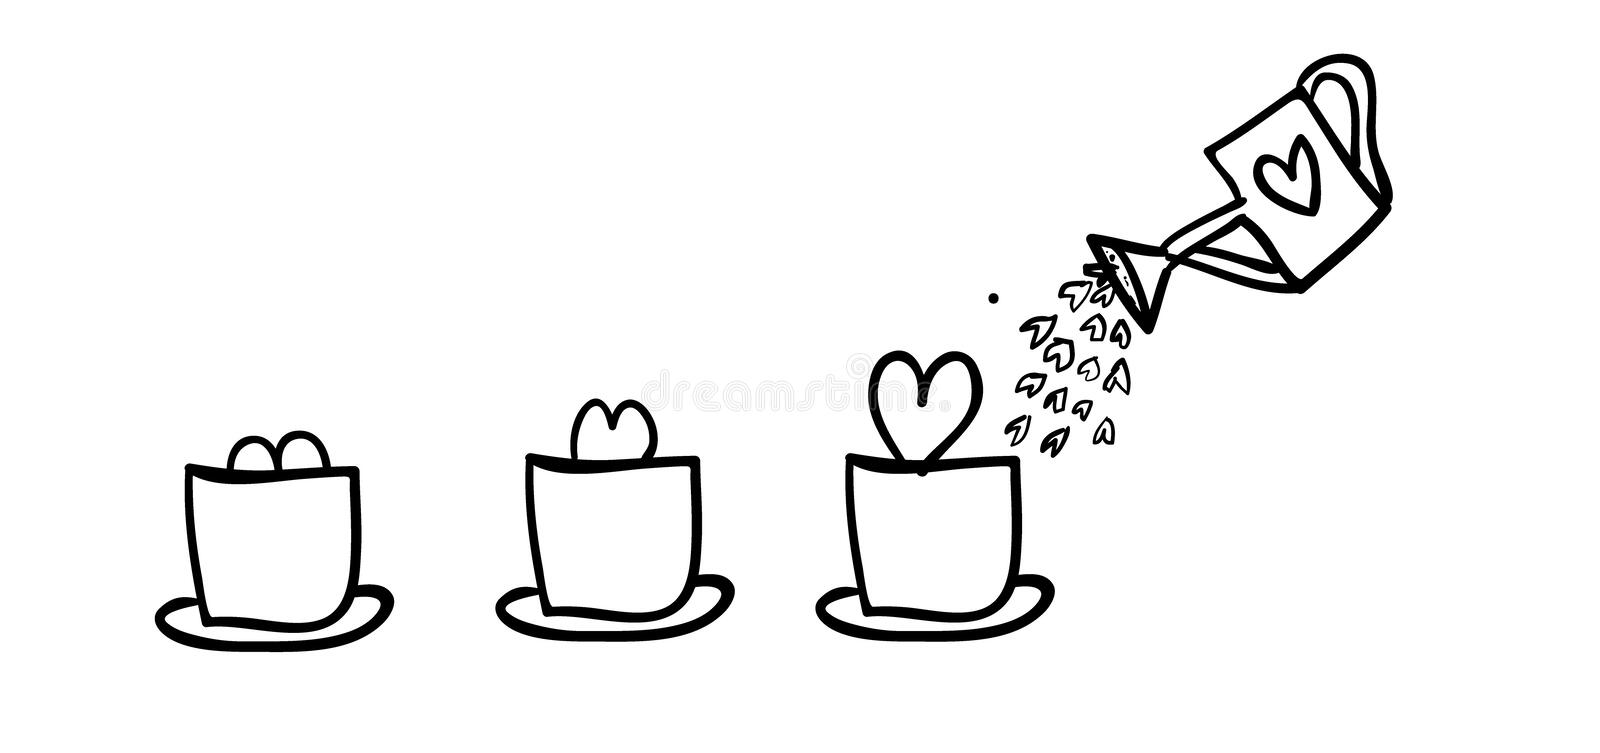 growing love in a flower pot stock illustration